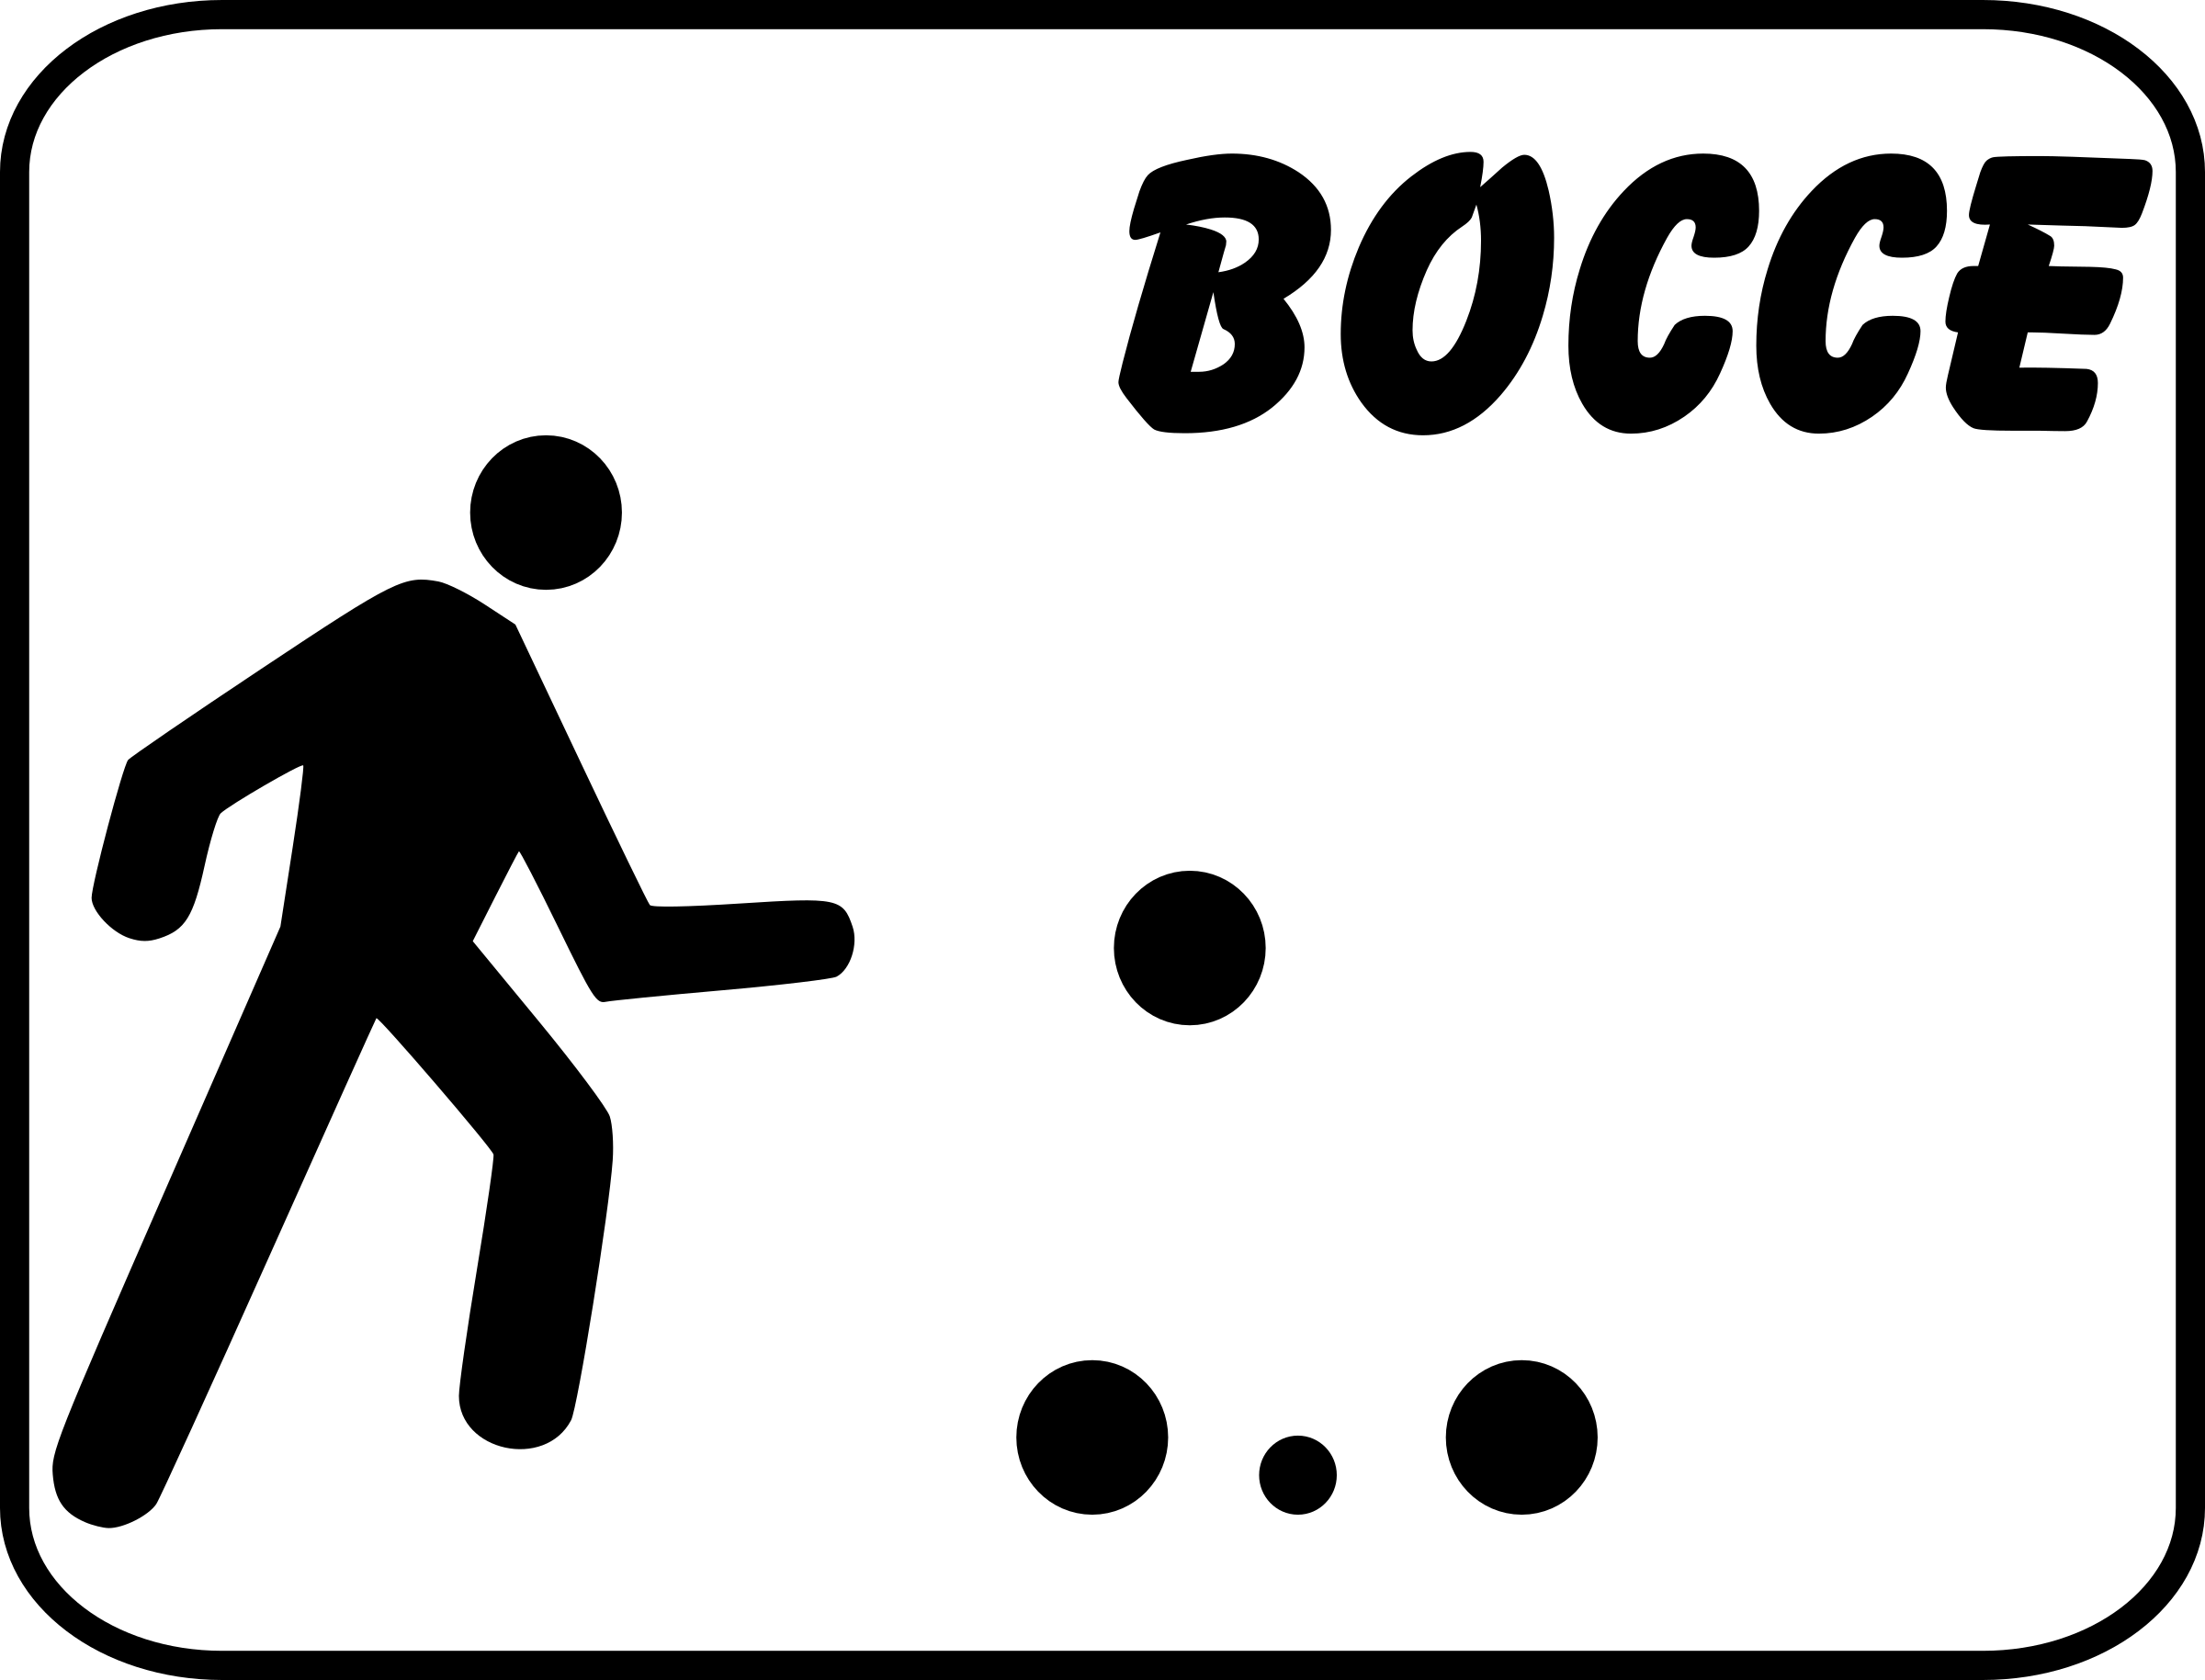 bocce sign by pjsvbfcm